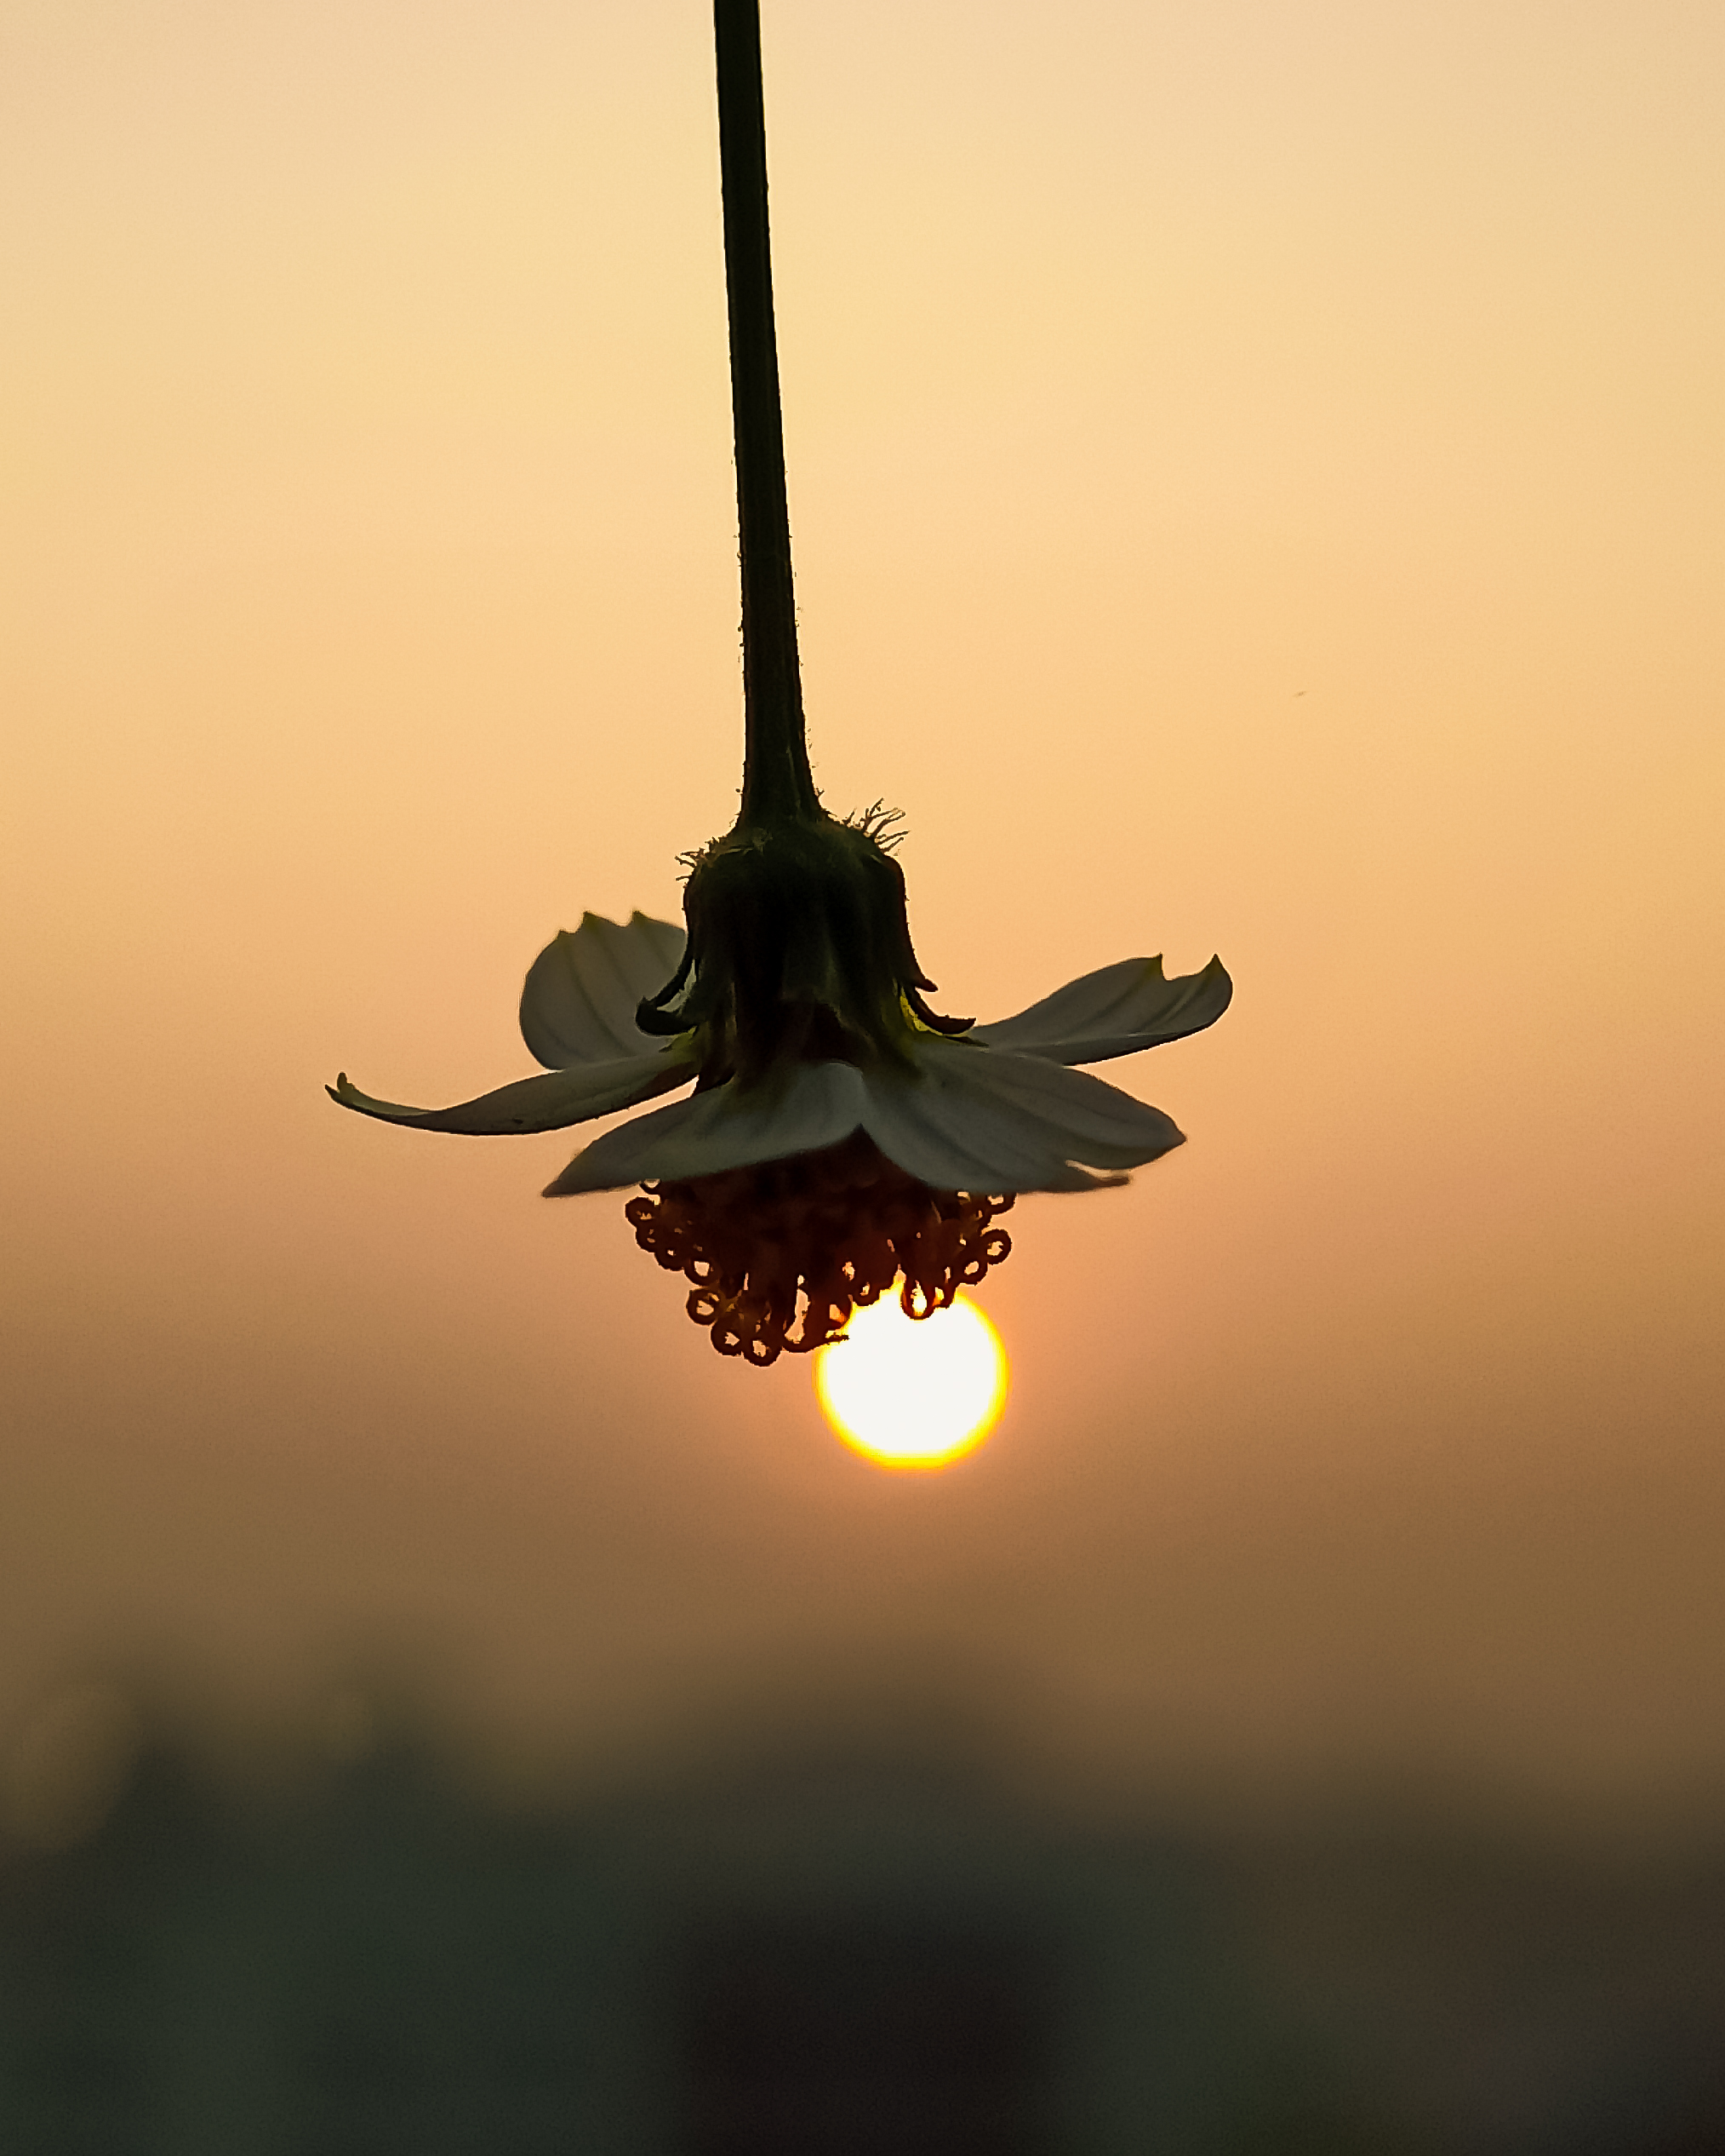 Flower in front of Sun